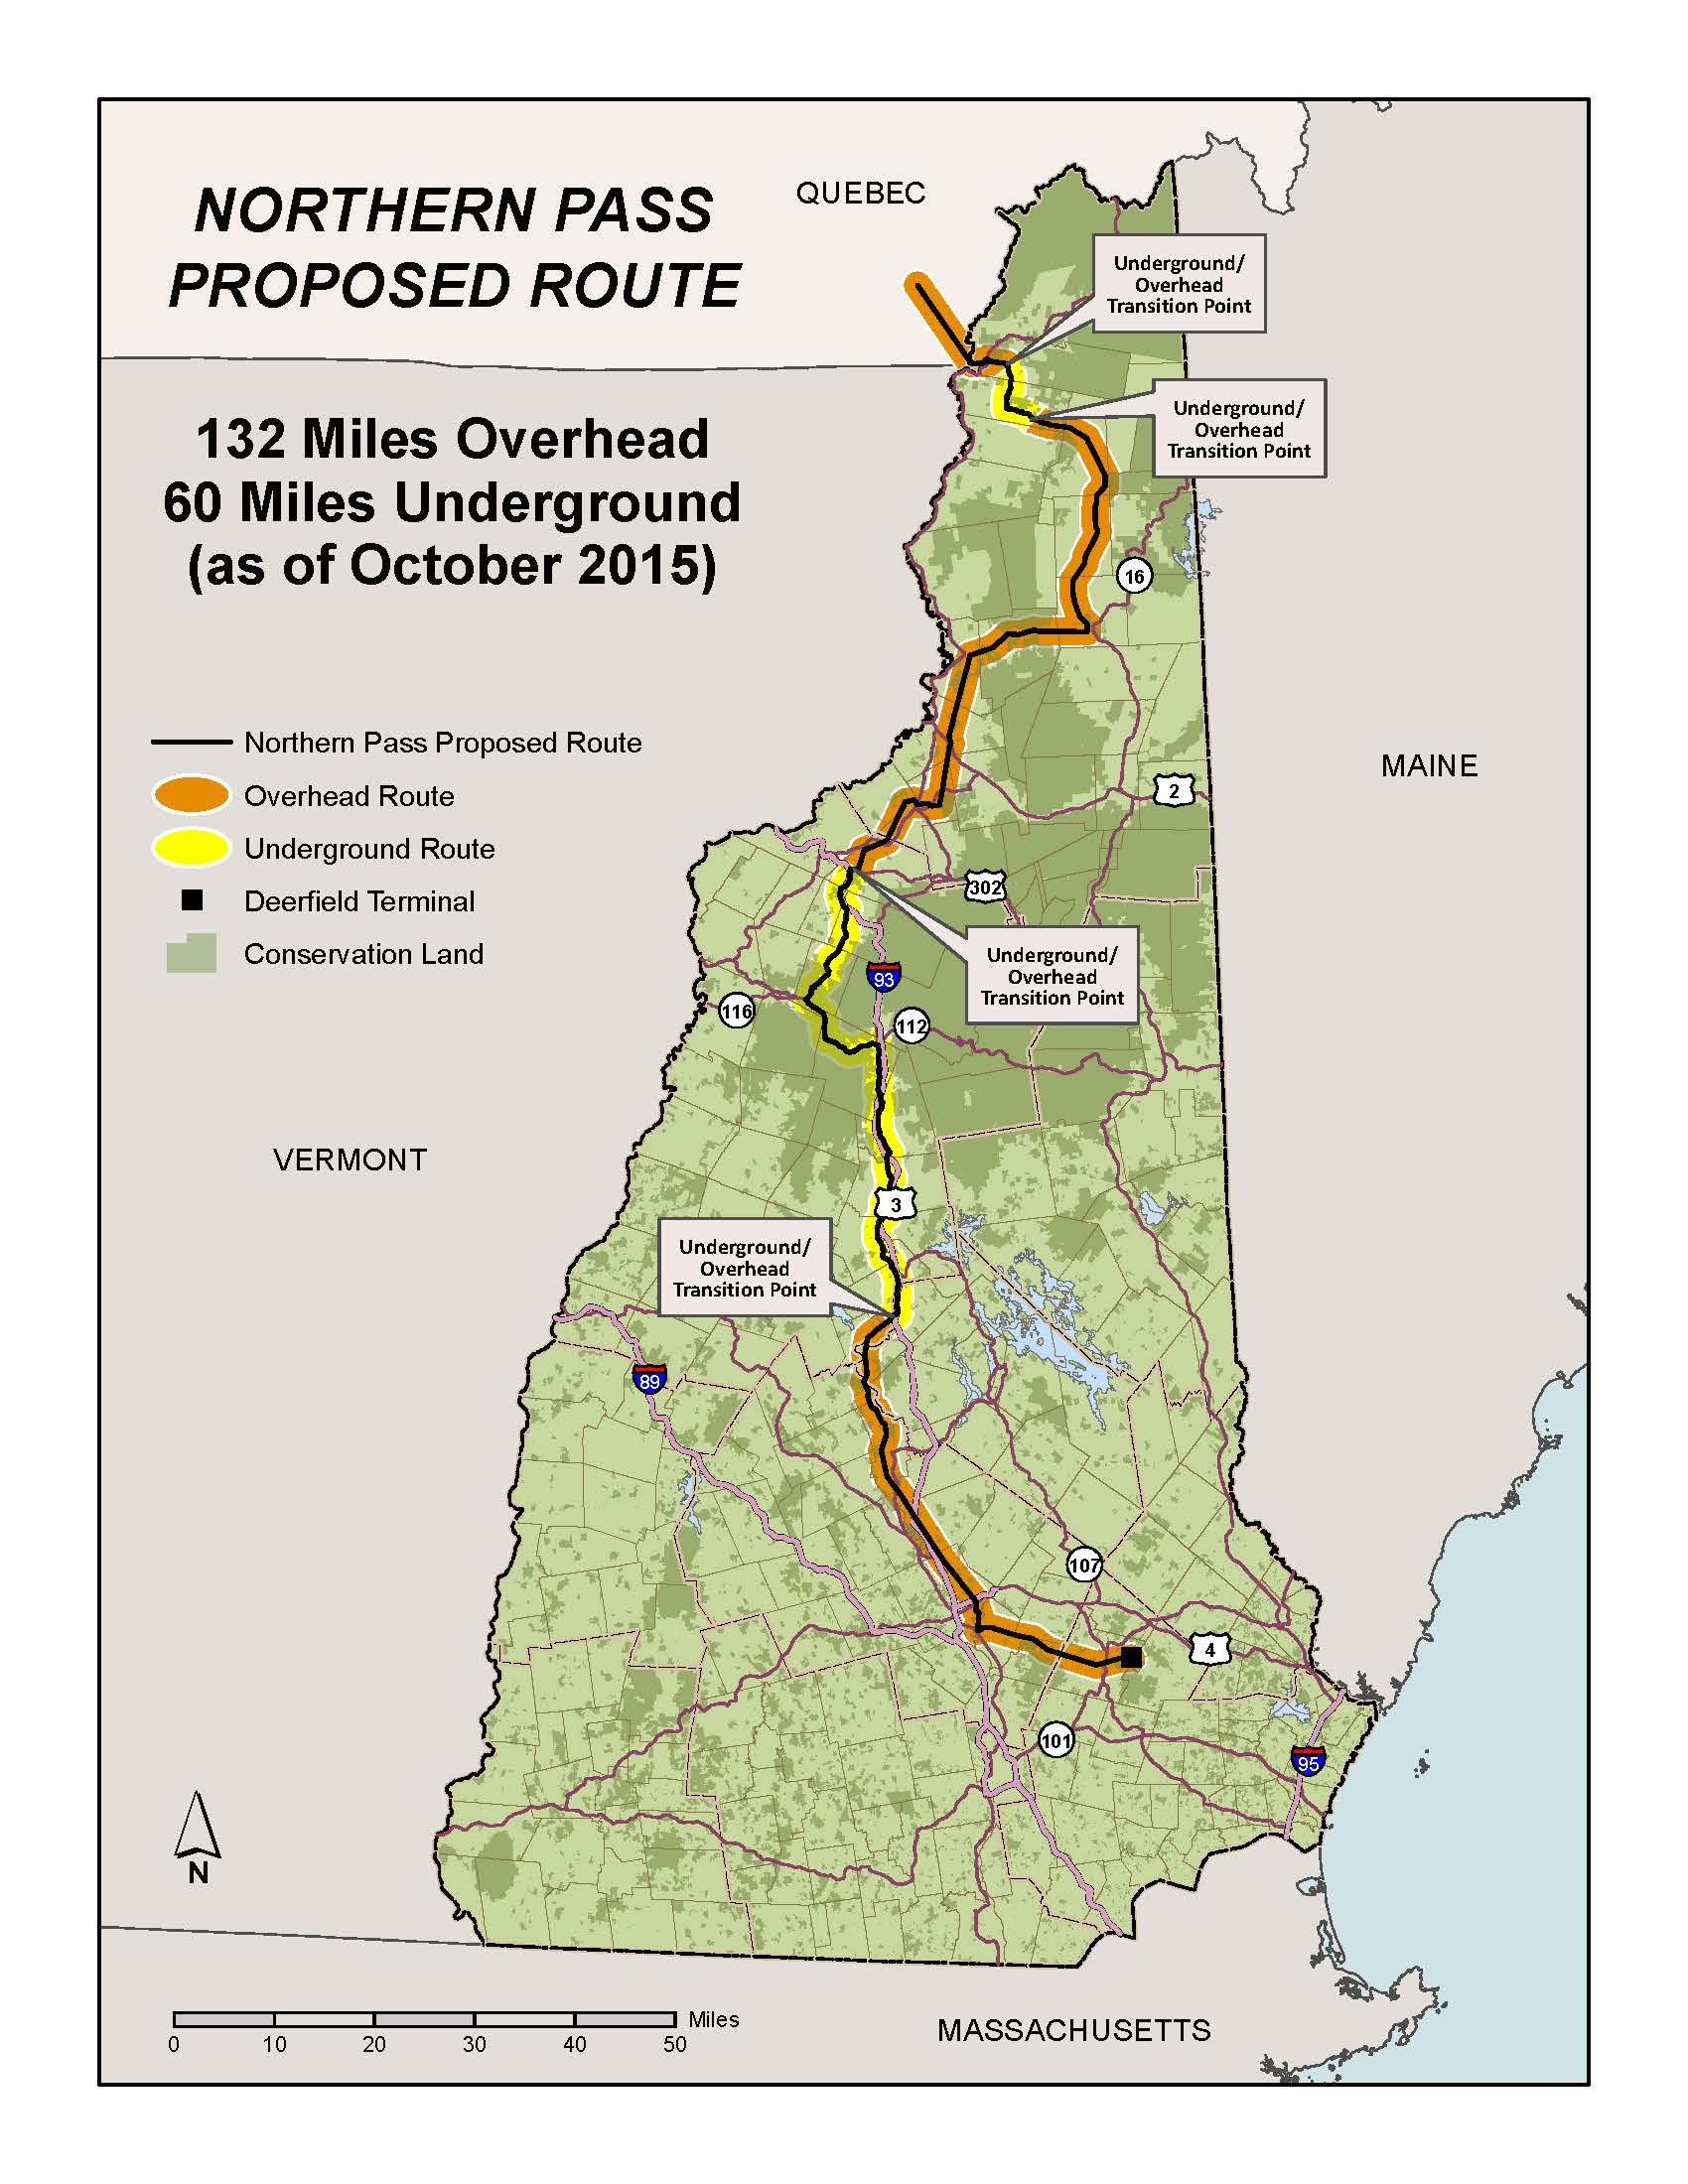 Northern Pass Proposed Route as of 2015